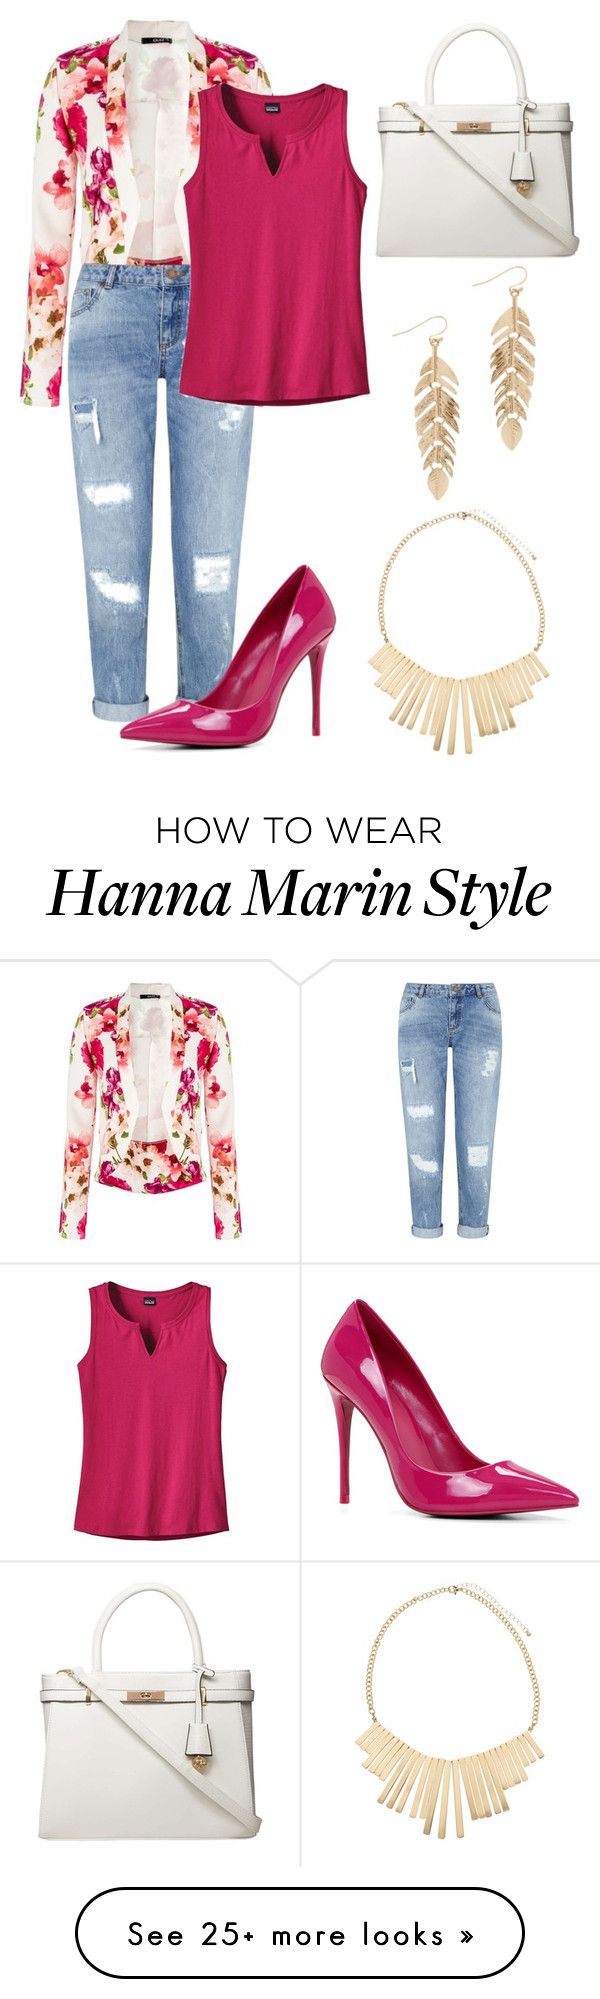 """hanna marin"" by princessdayna on Polyvore featuring Quiz, Miss Selfridge, Patagonia, ALDO, John Lewis, Humble Chic and Dorothy Perkins"